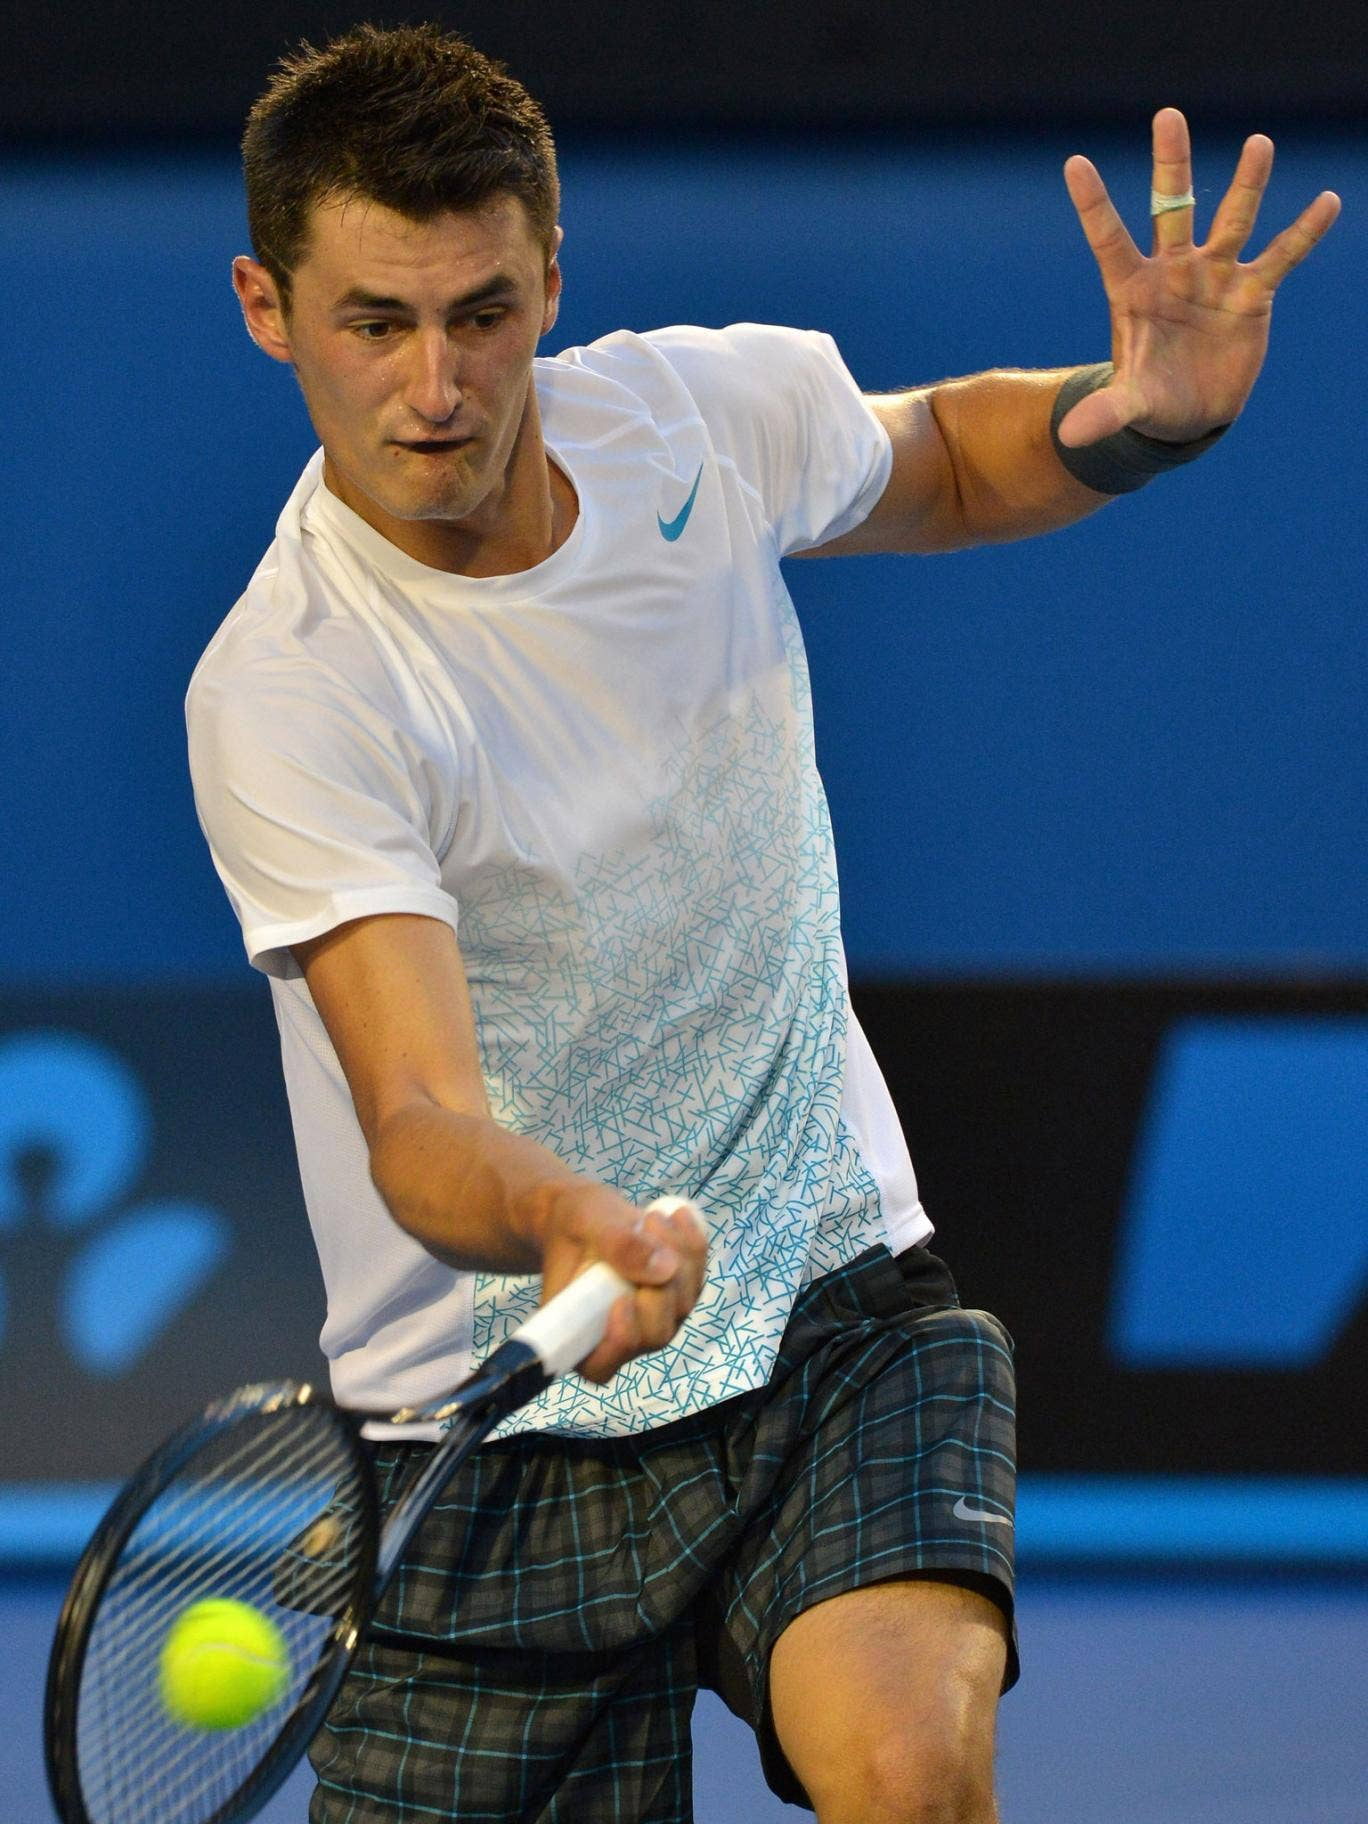 Moment of strewth: Bernard Tomic, the only remaining home player in the Australian Open singles, was beaten in straight sets by Roger Federer